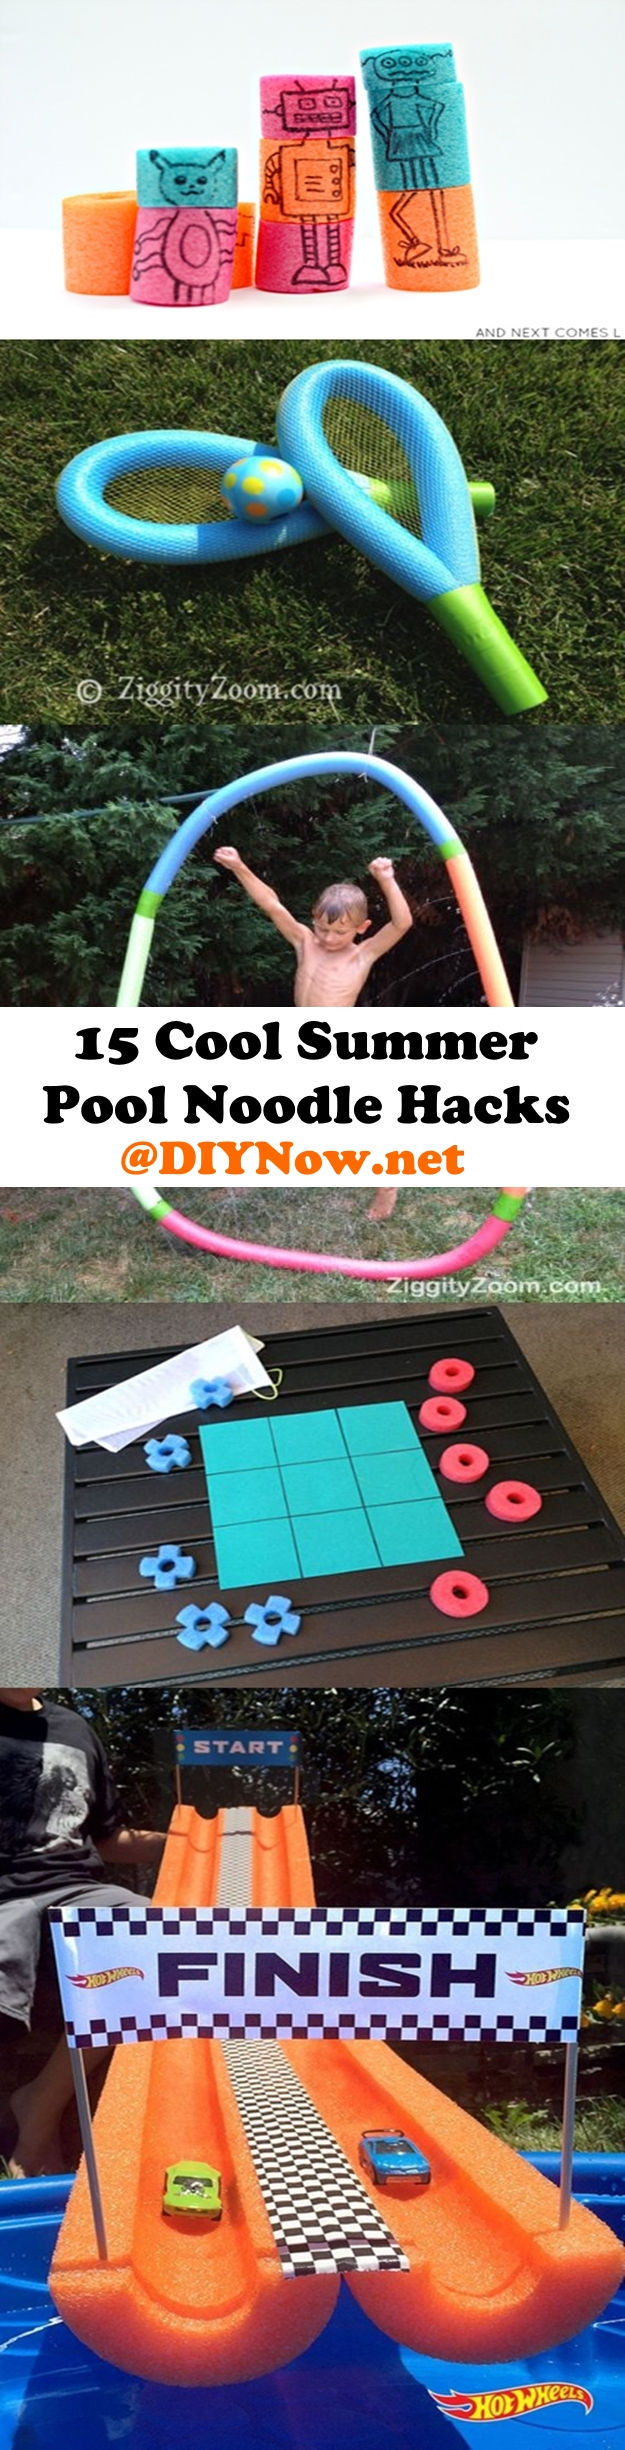 15 Cool Summer Pool Noodle Hacks